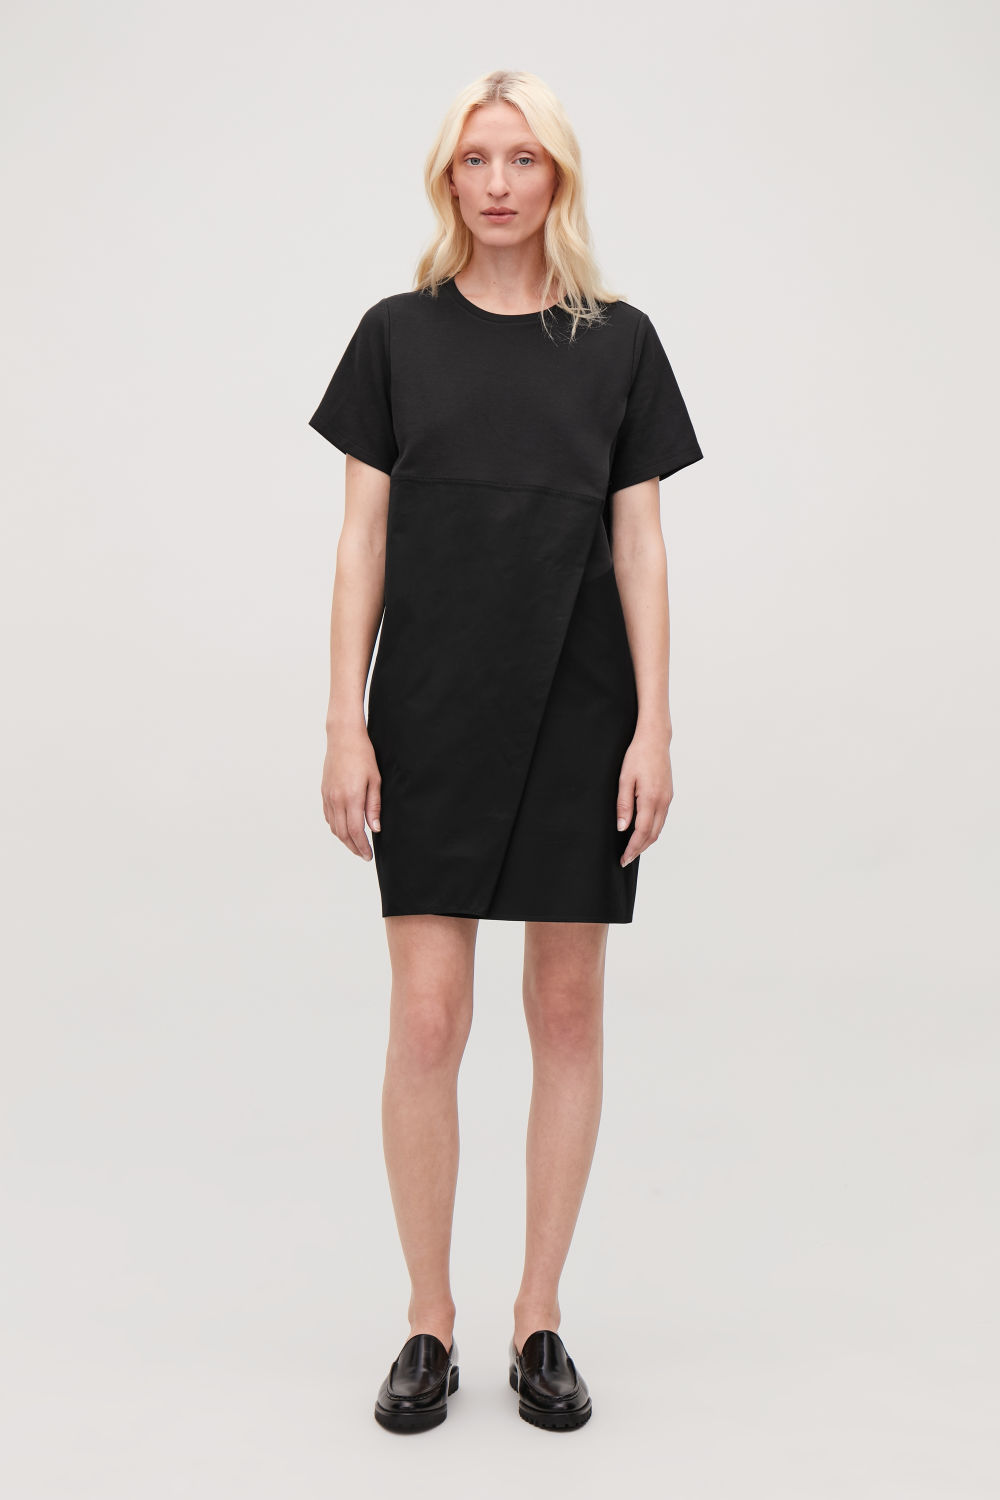 COS DRESS WITH OVERLAP FRONT,Black